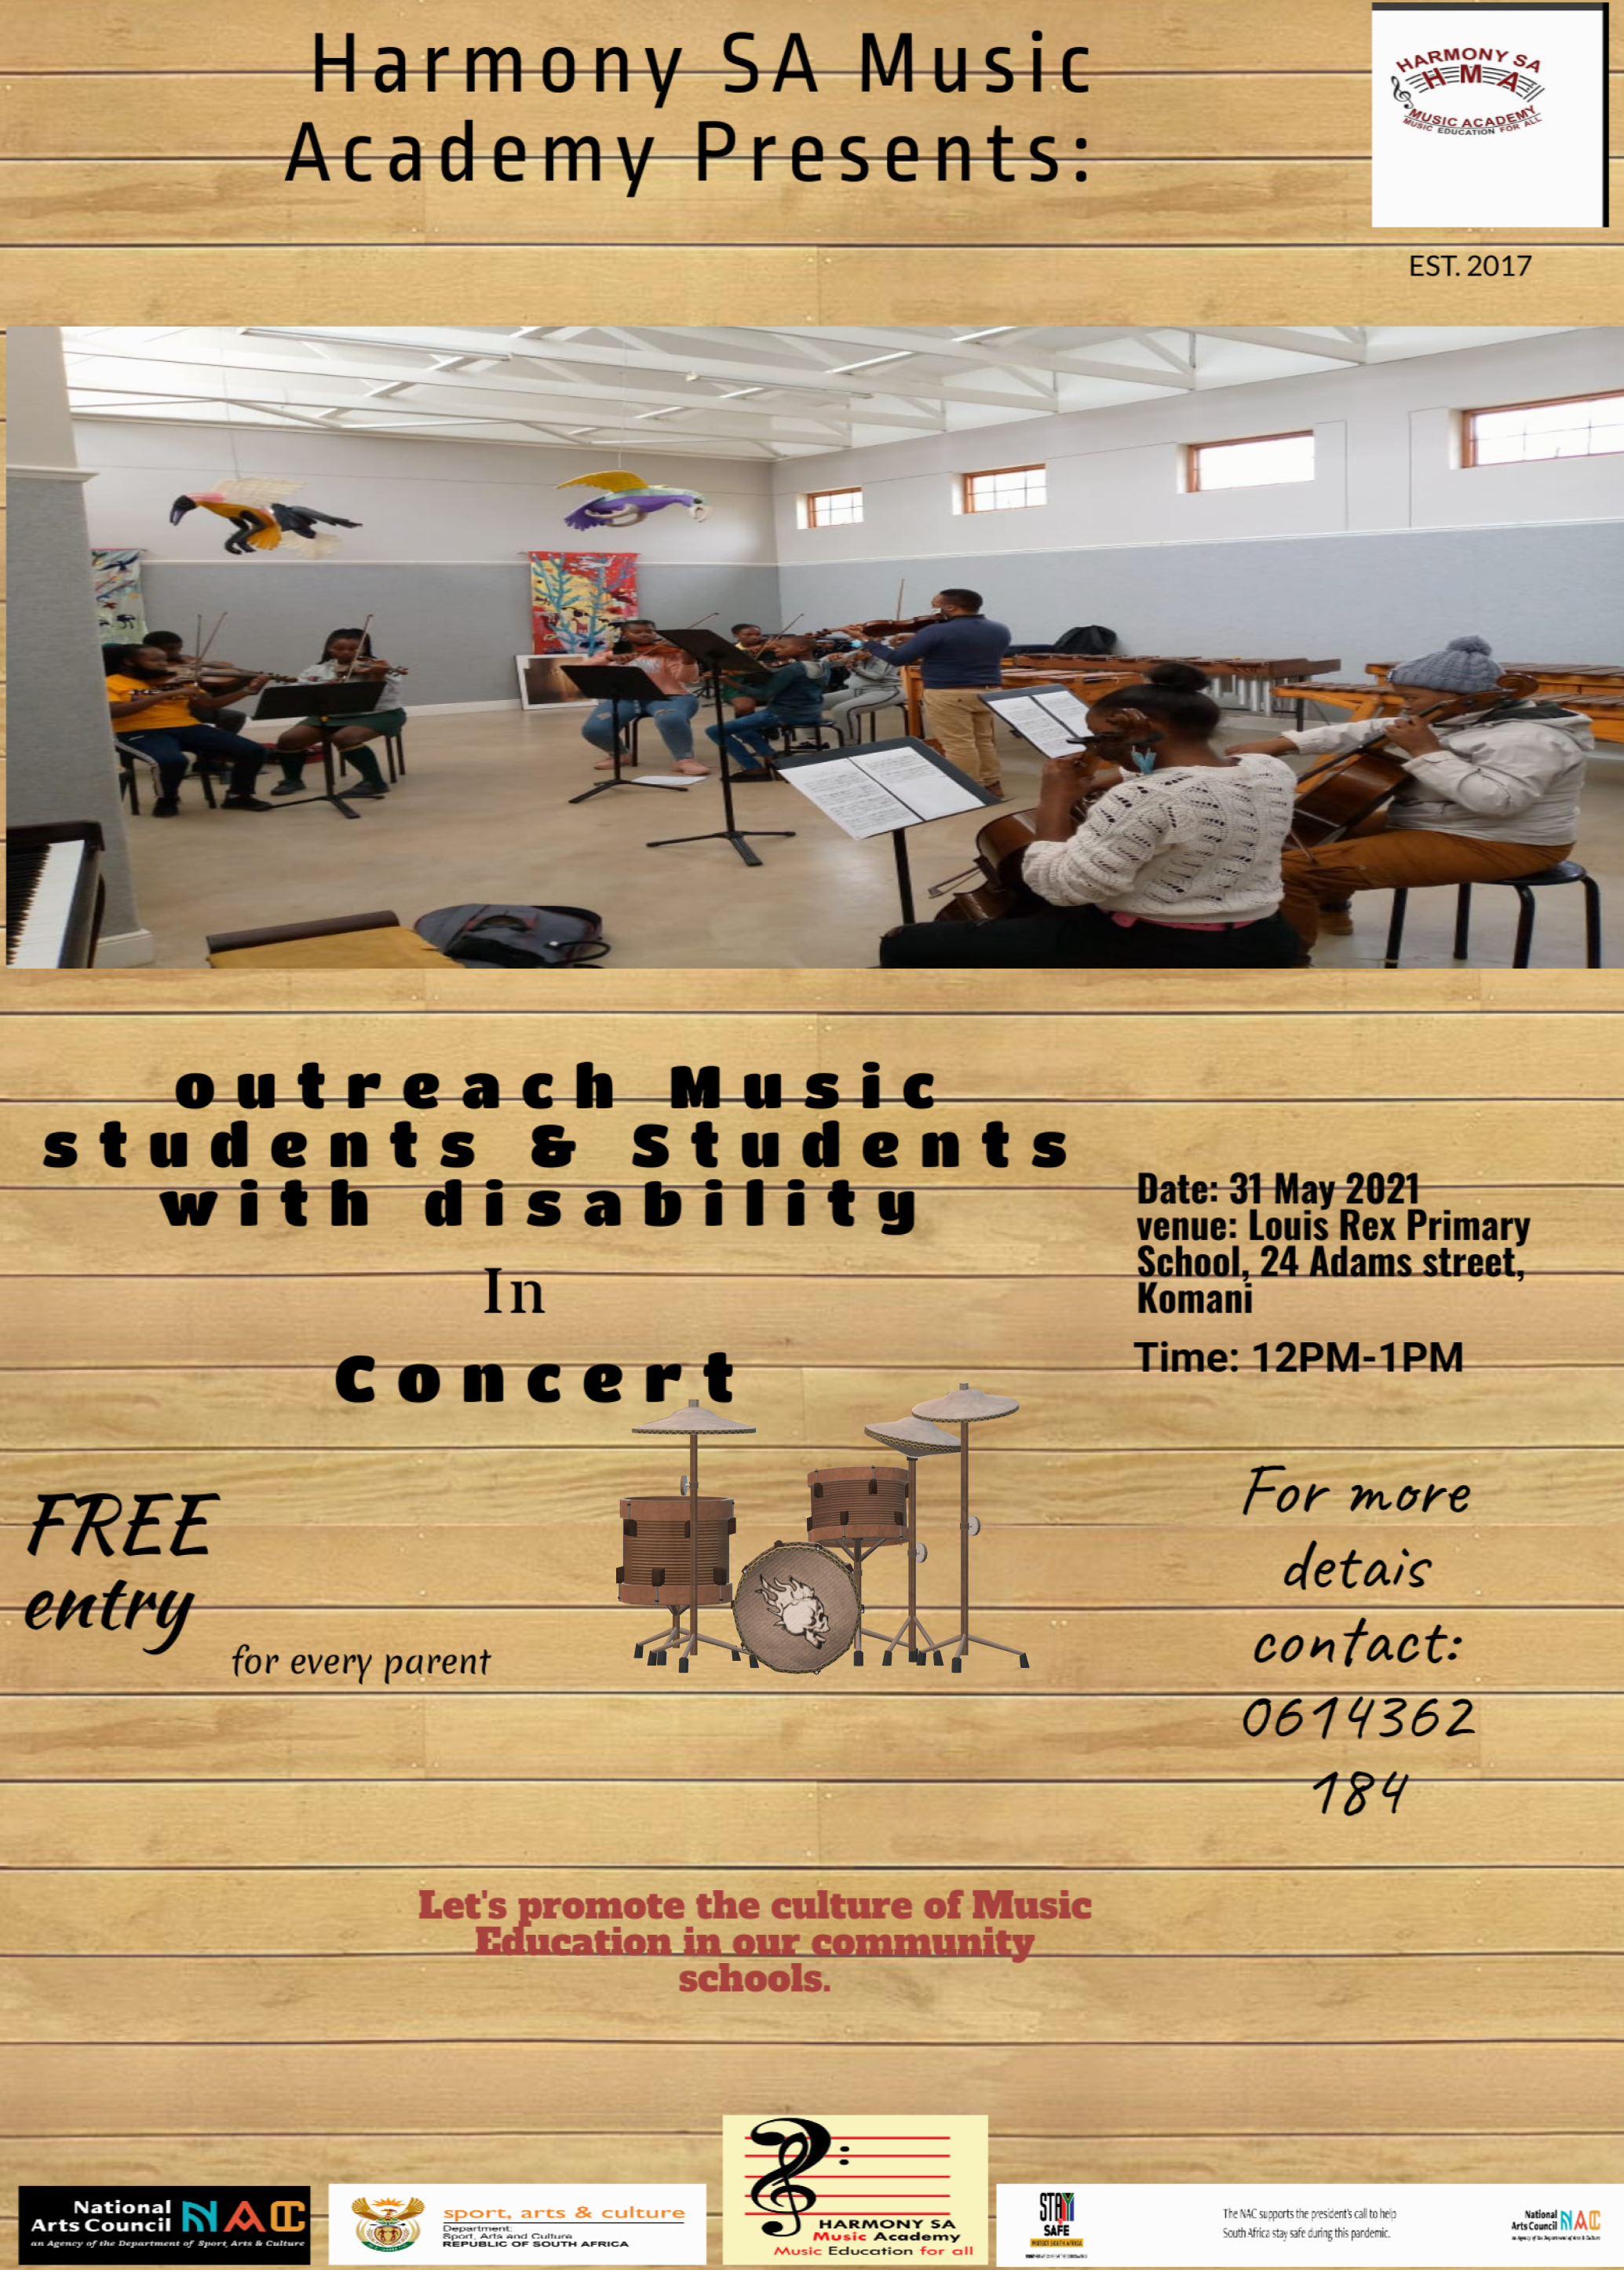 Outreach Music Students & Student with Disability – In Concert